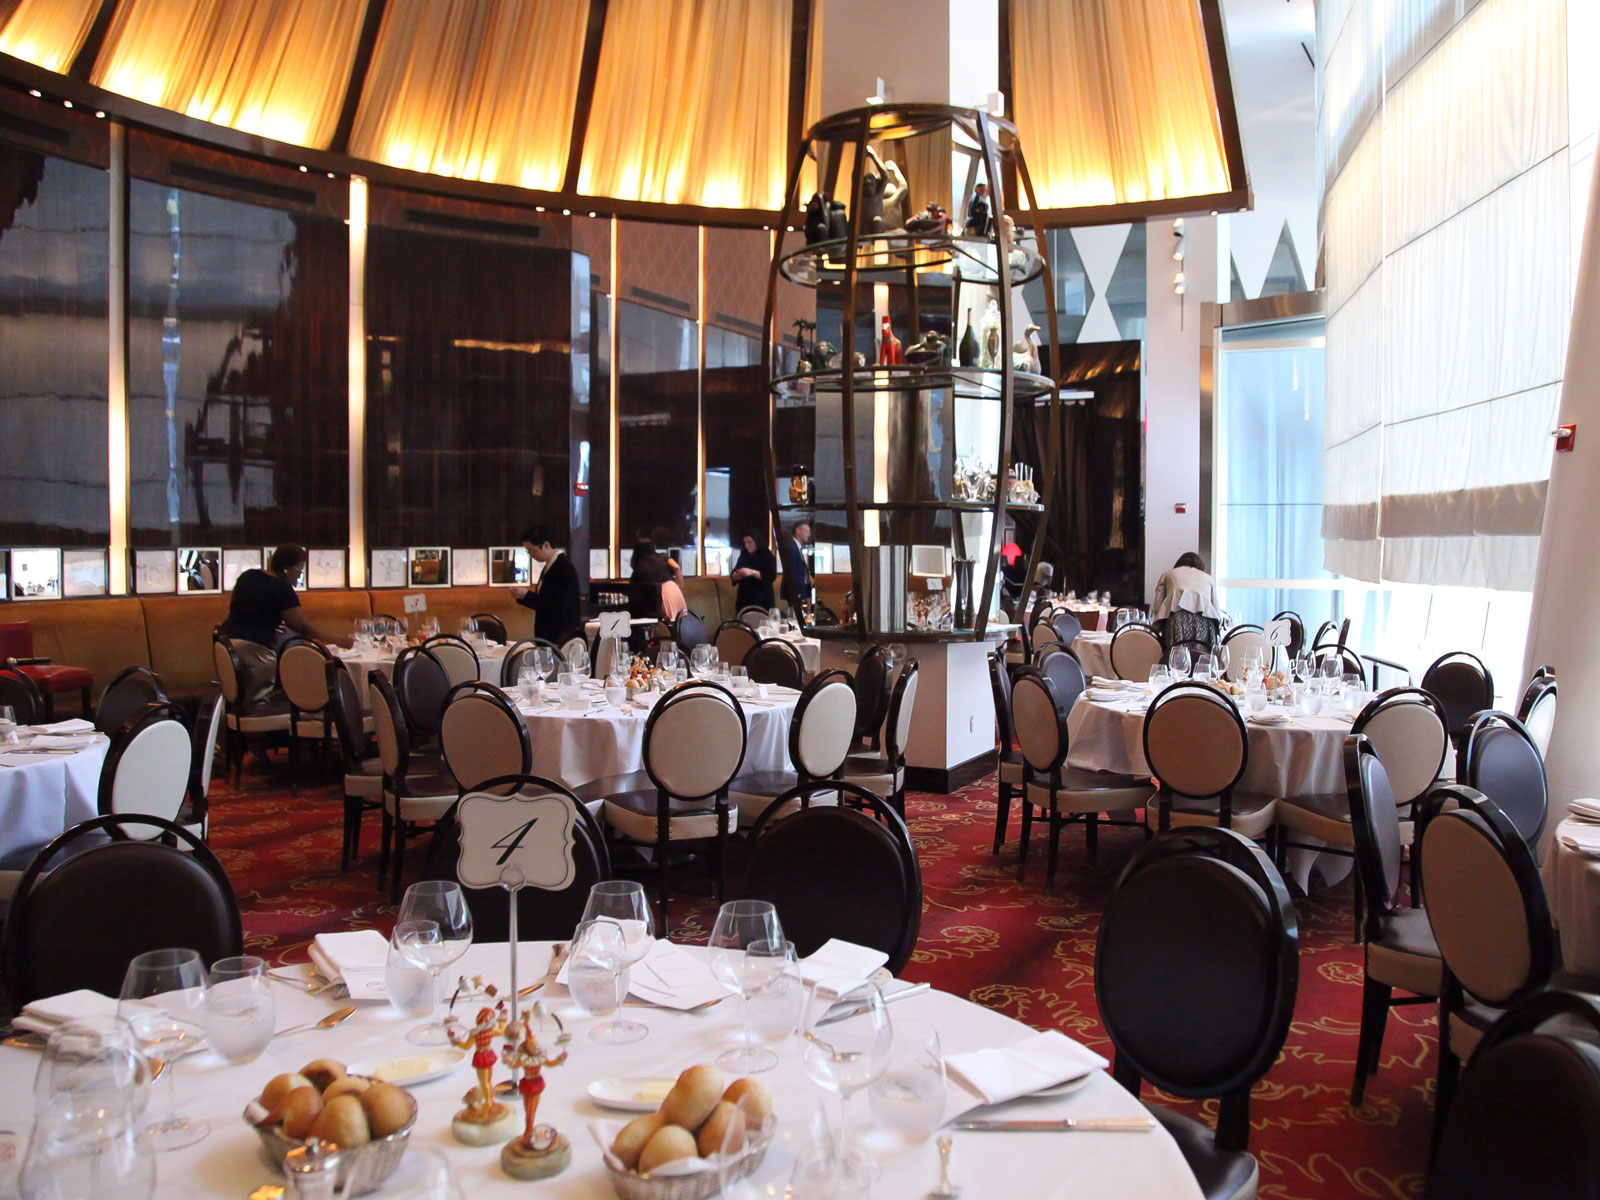 New York's Seminal French Restaurant Le Cirque Is Closing Its Current Location